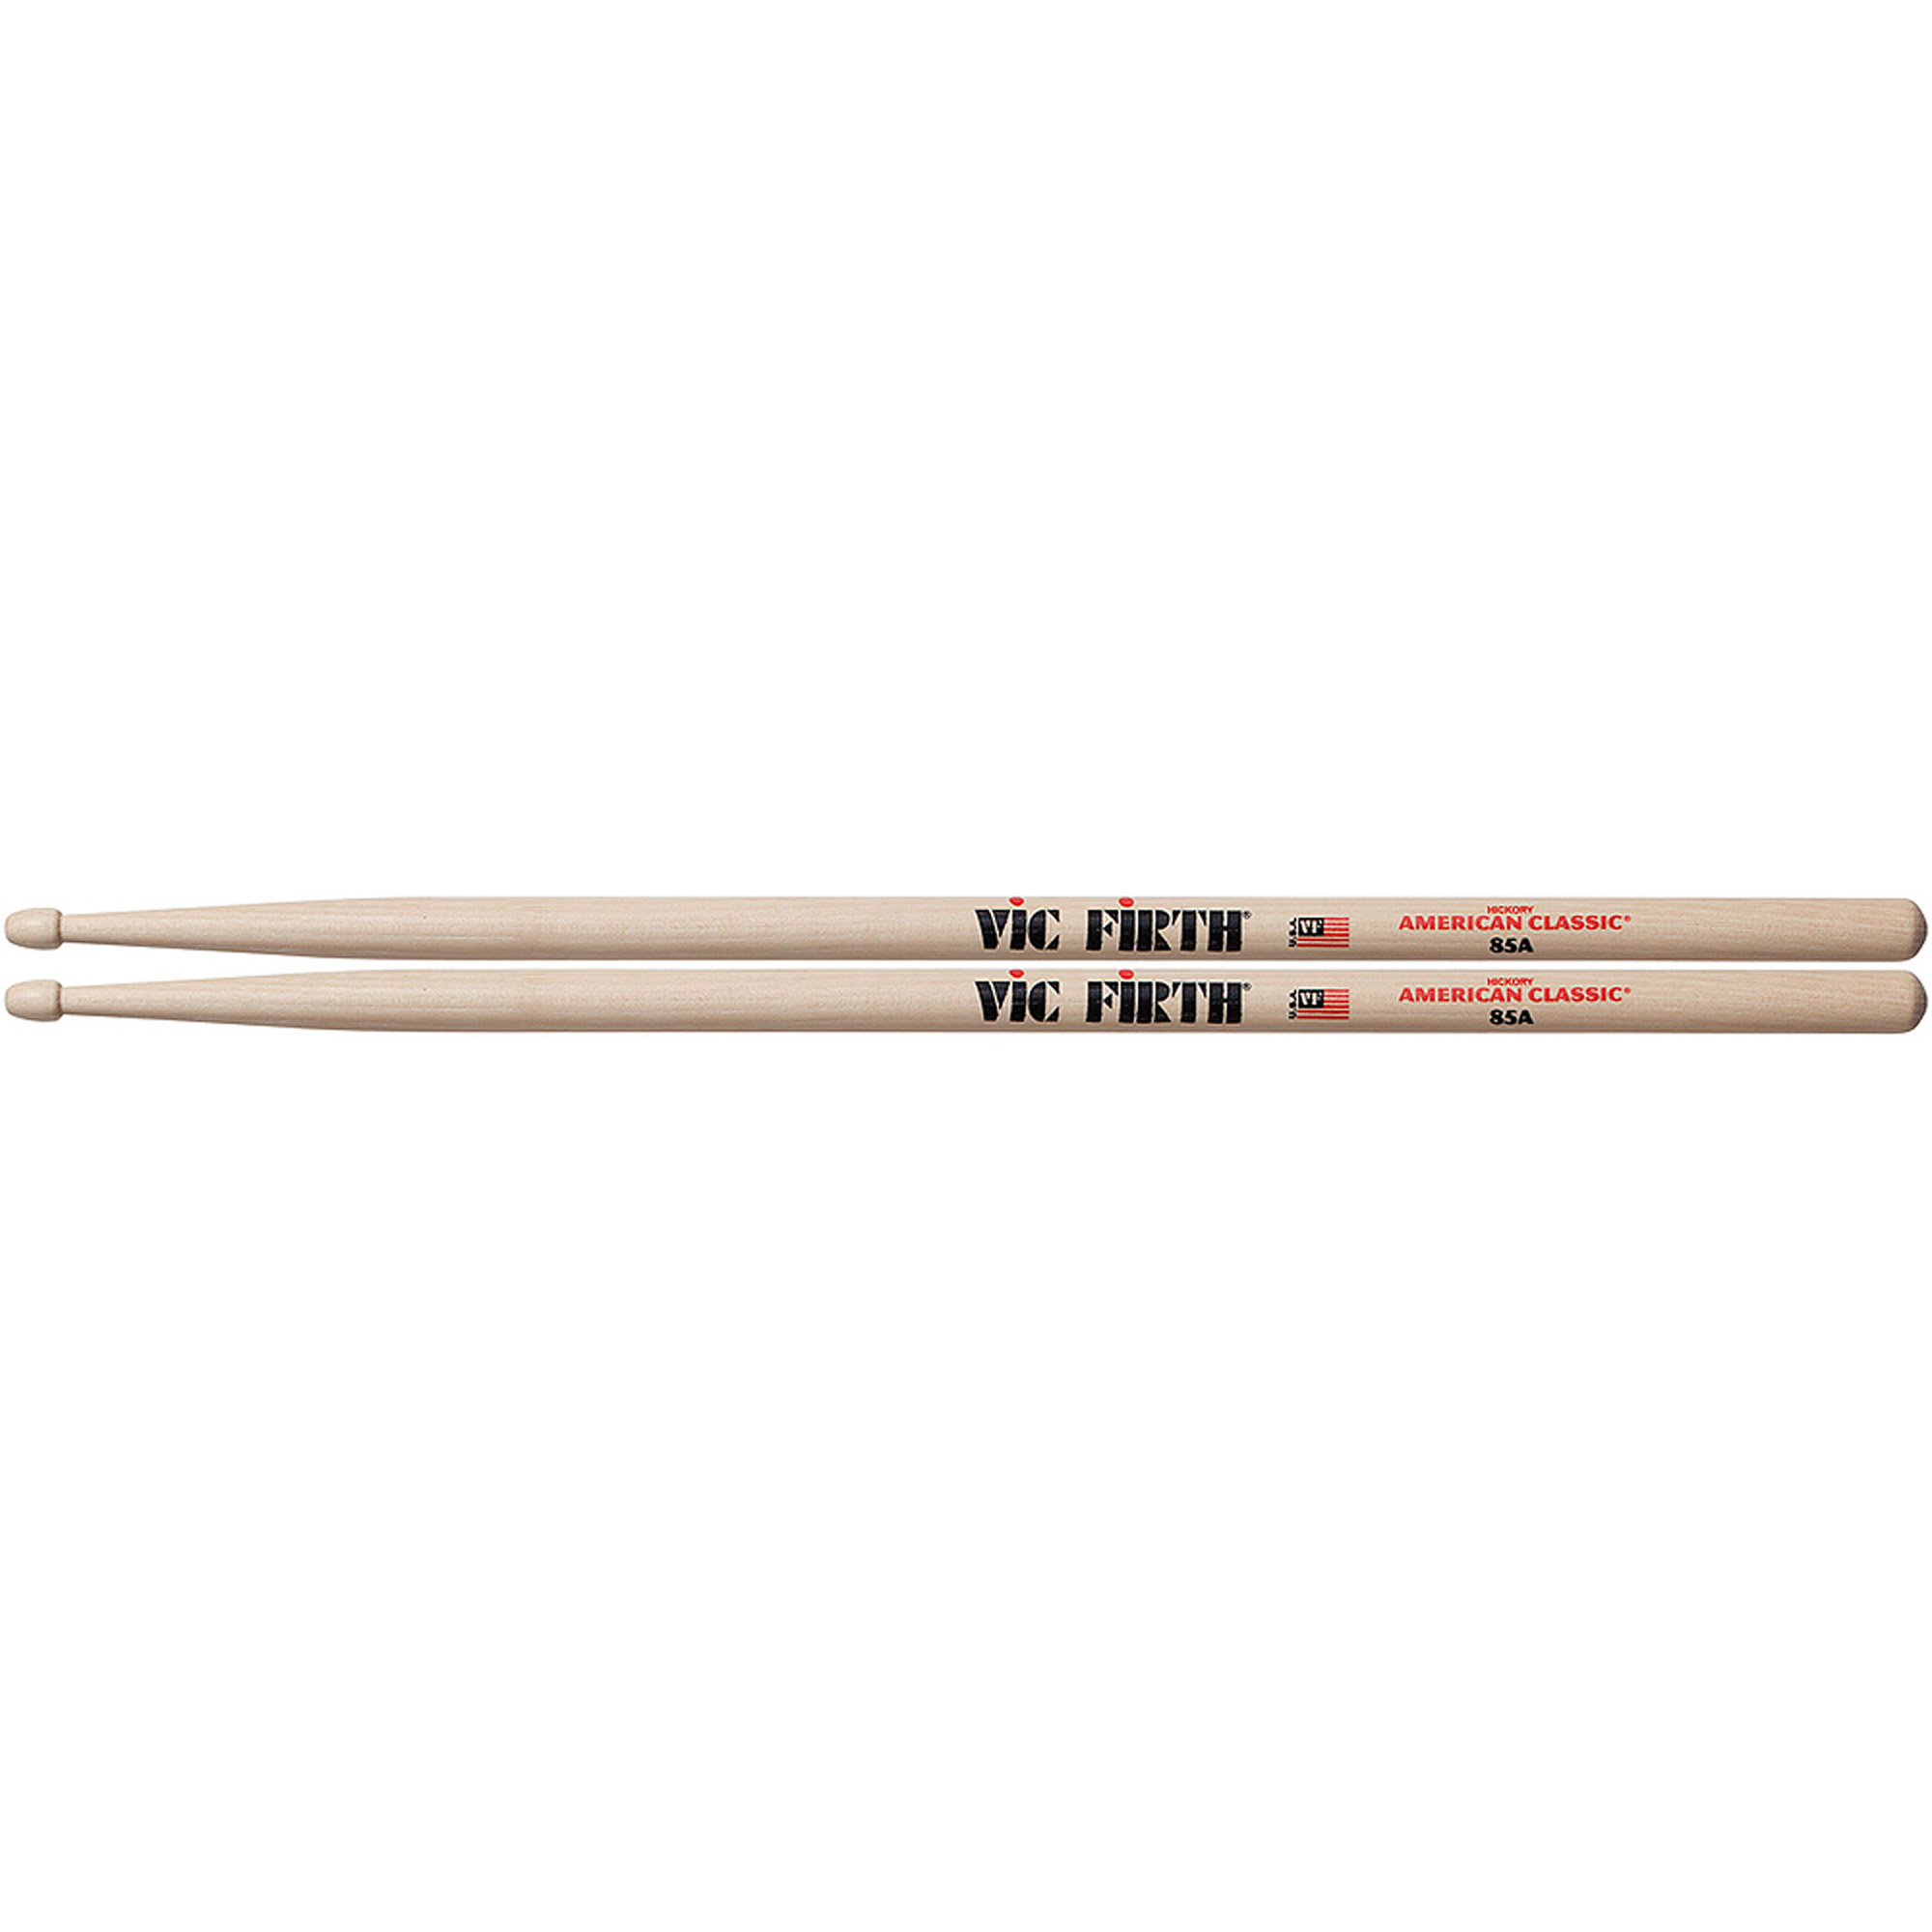 Vic Firth American Classic 85A Drumsticks, Wood Tip